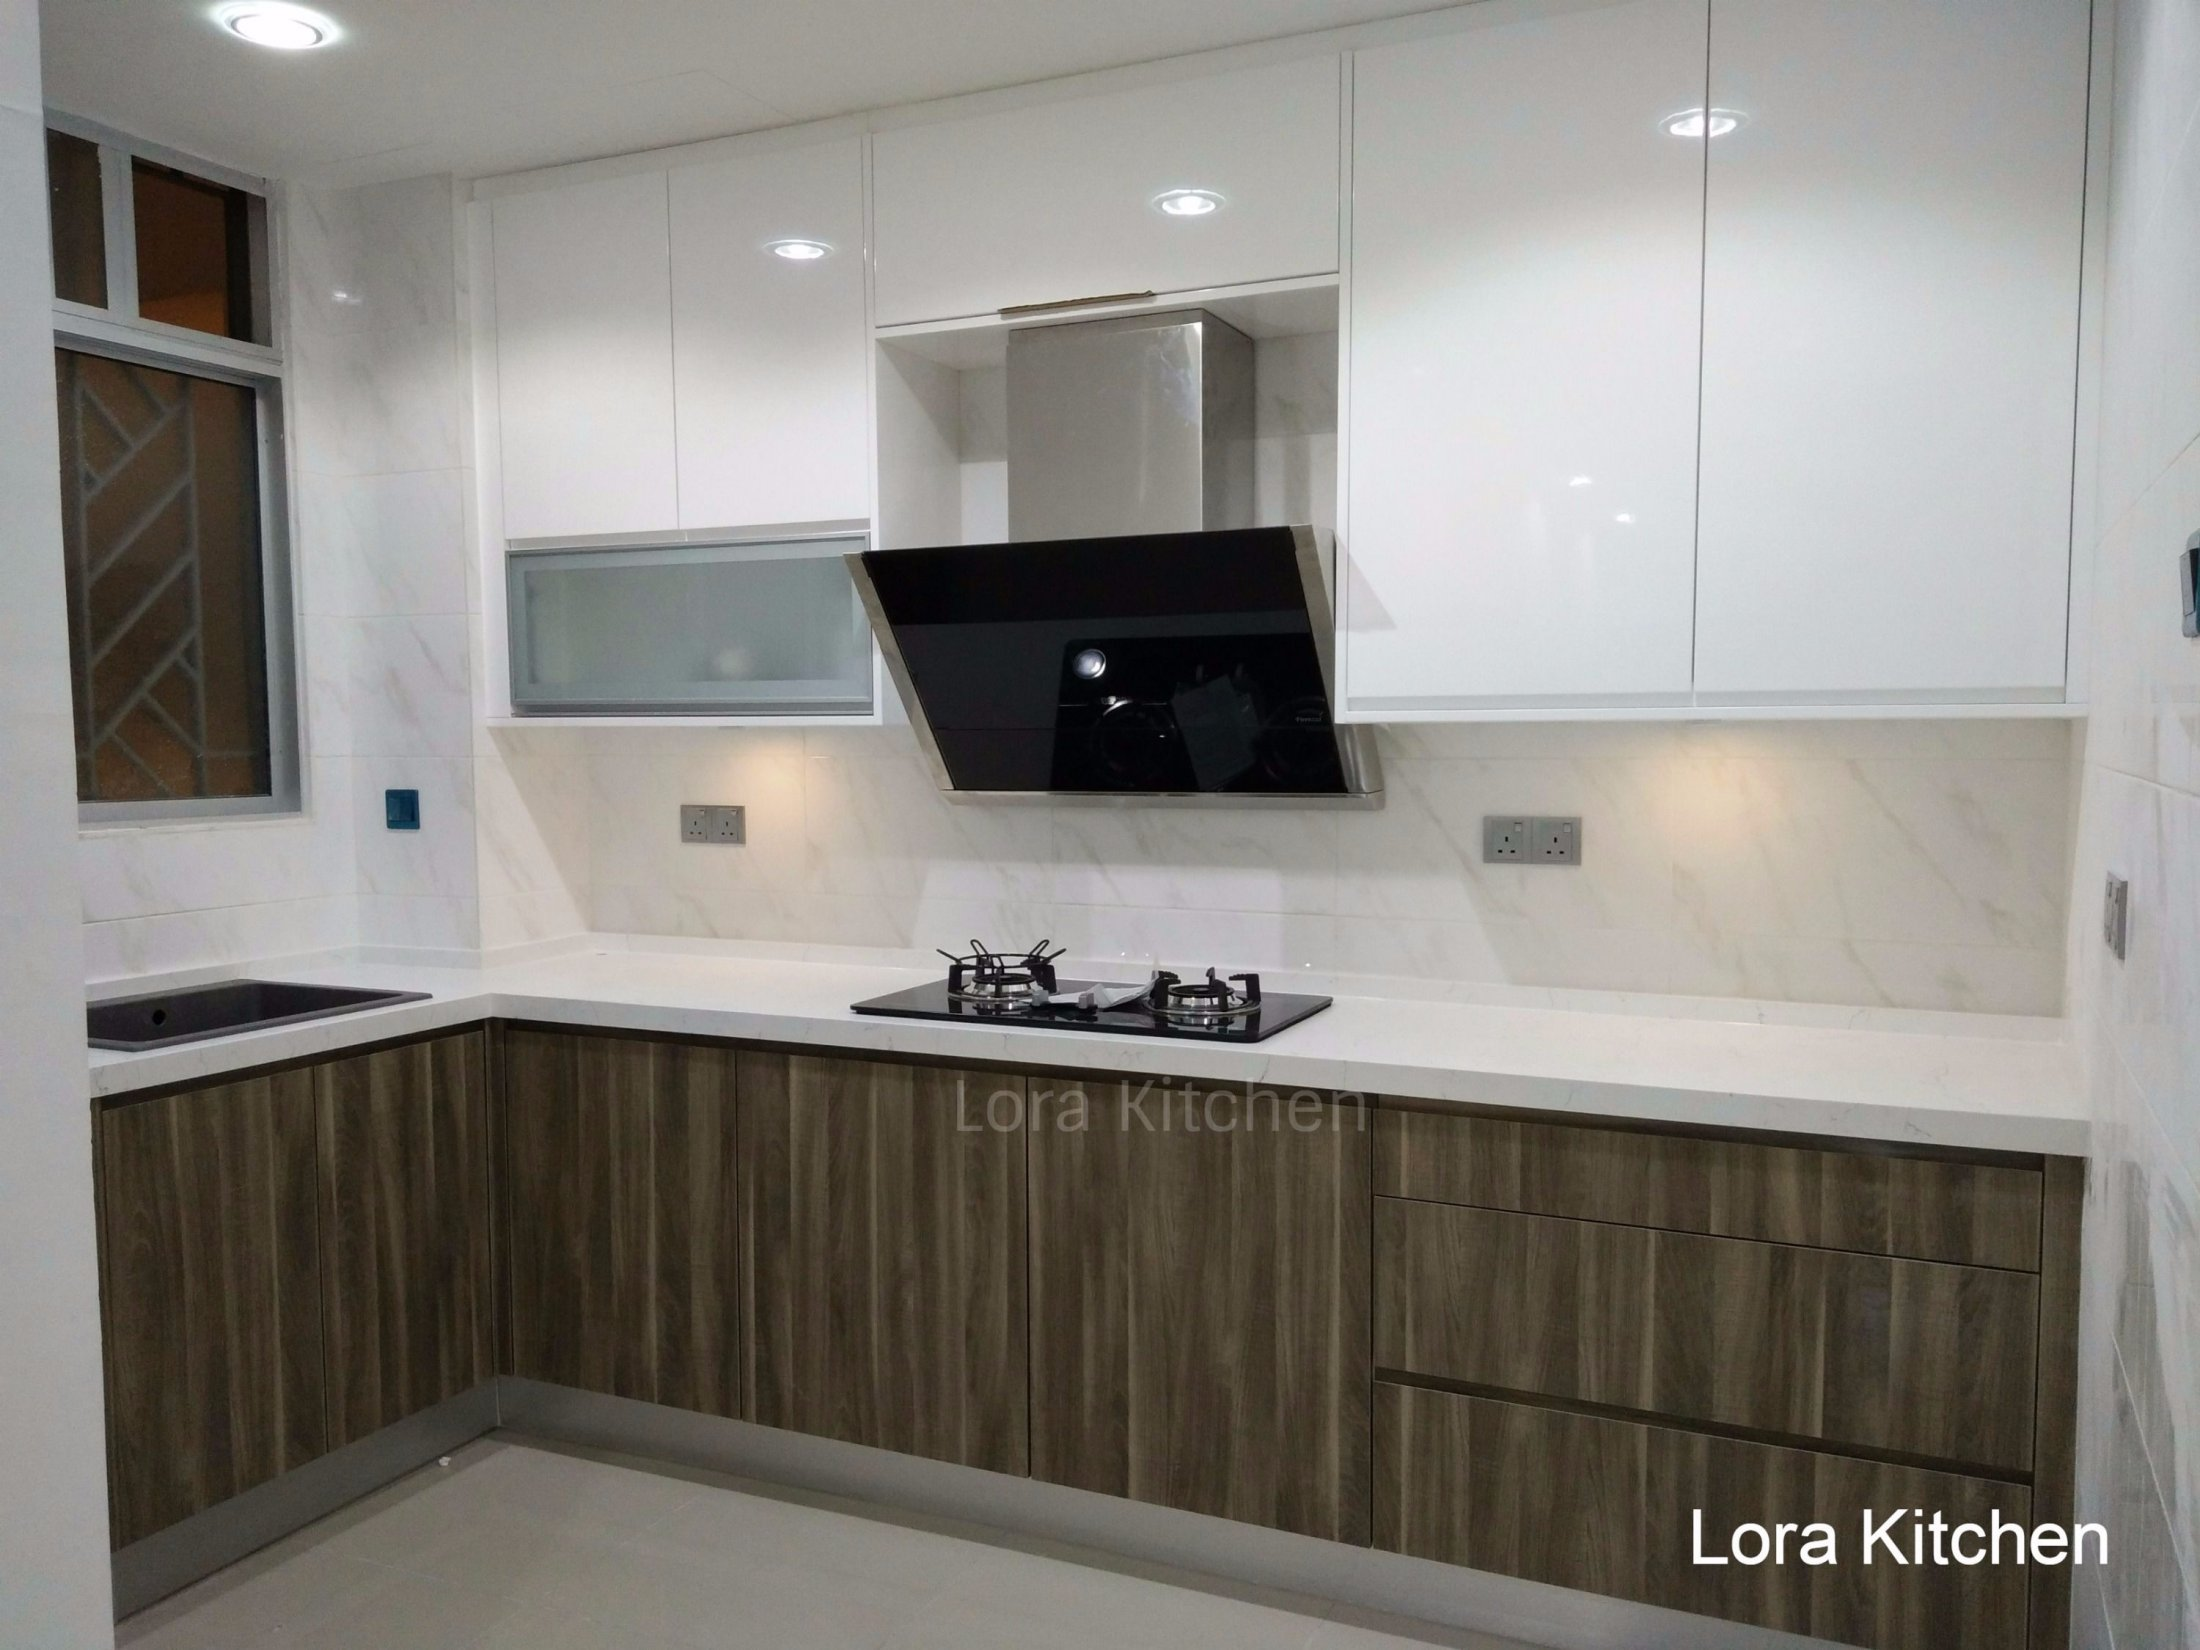 Cabinet Designs For Kitchens Stunning Modern Kitchen Cabinet Design In Malaysia Lora